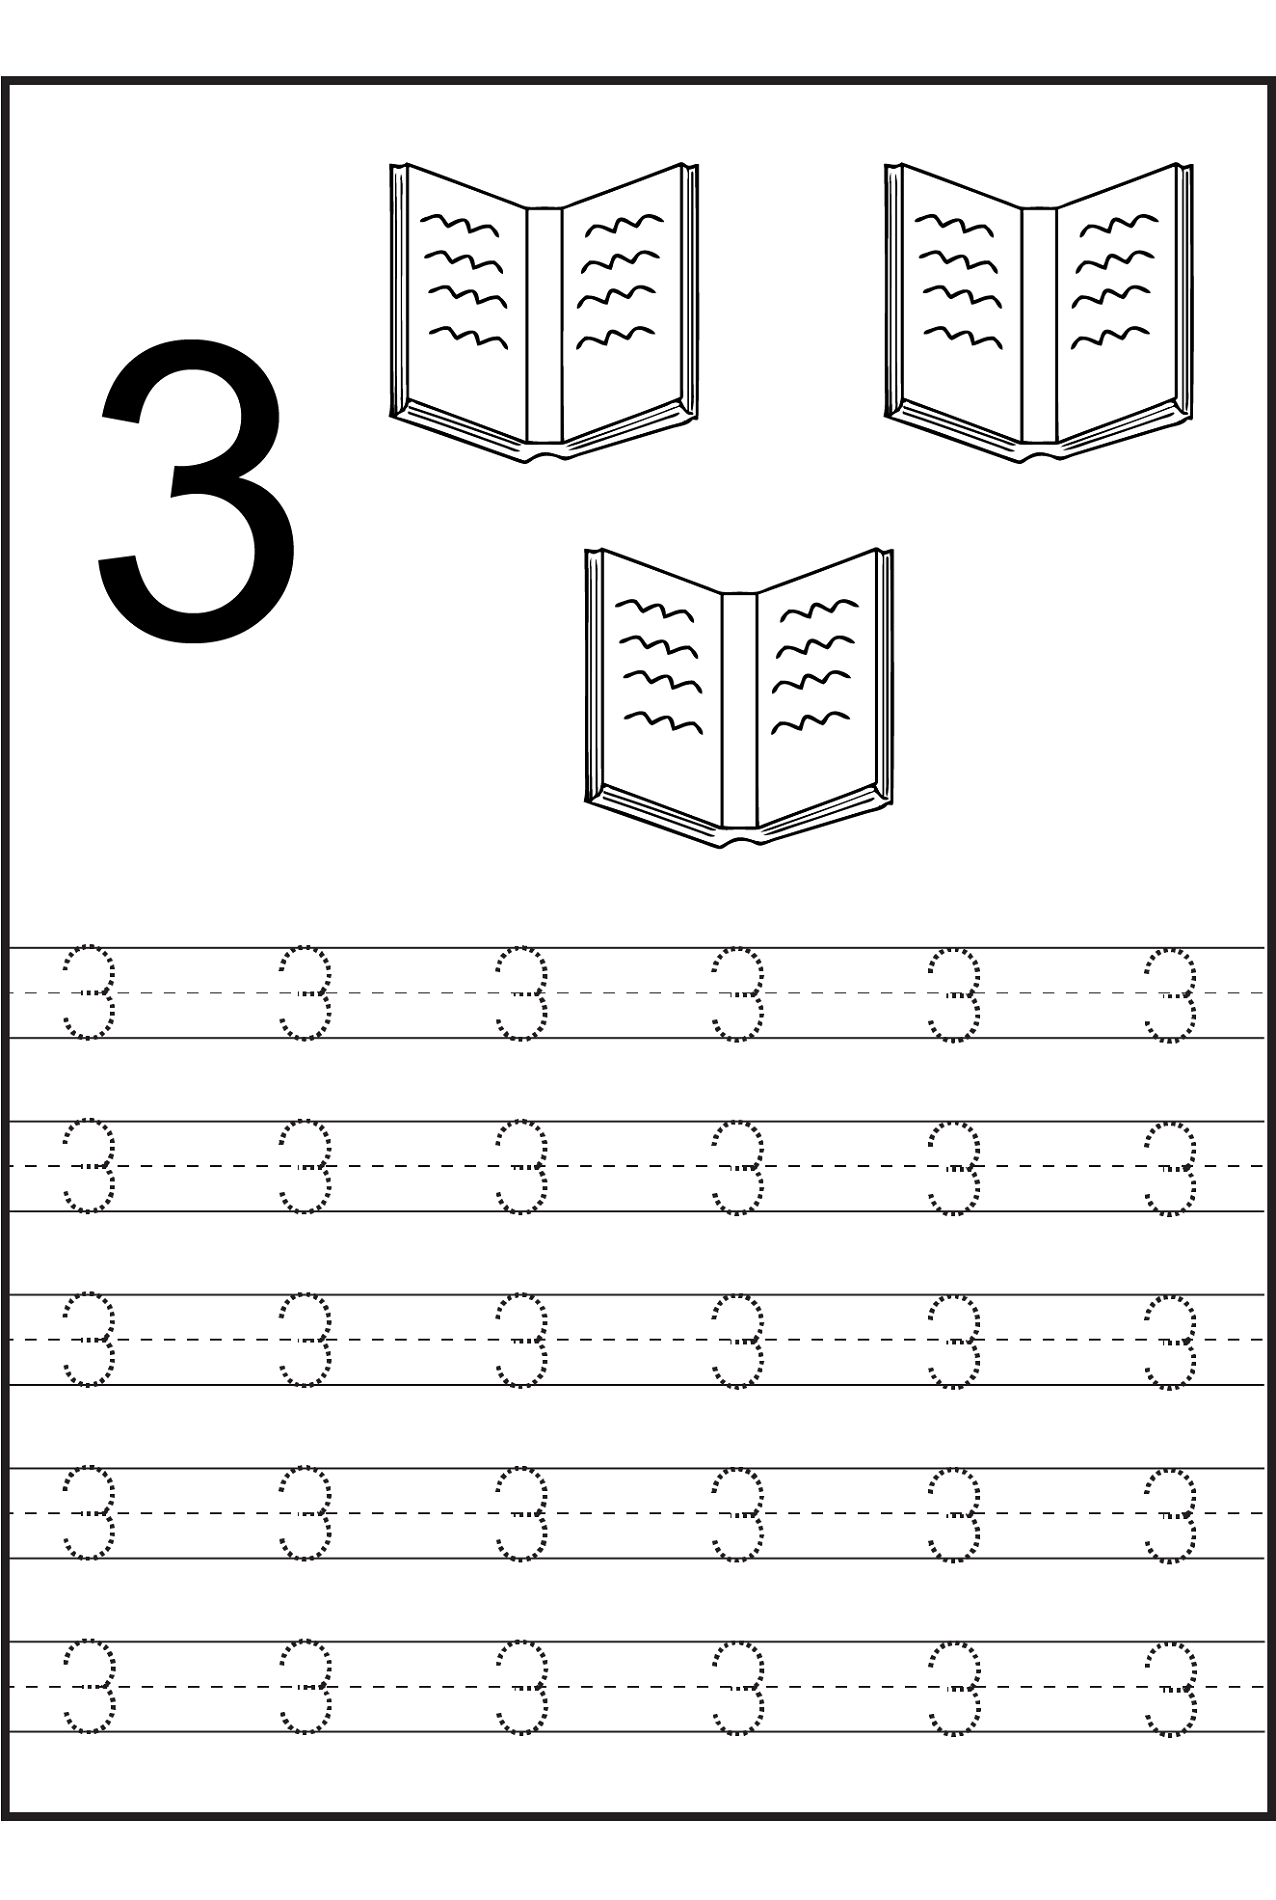 Worksheets For 2 Year Olds Number 3 Sarmad S Activities   Learning  worksheets [ 1900 x 1276 Pixel ]